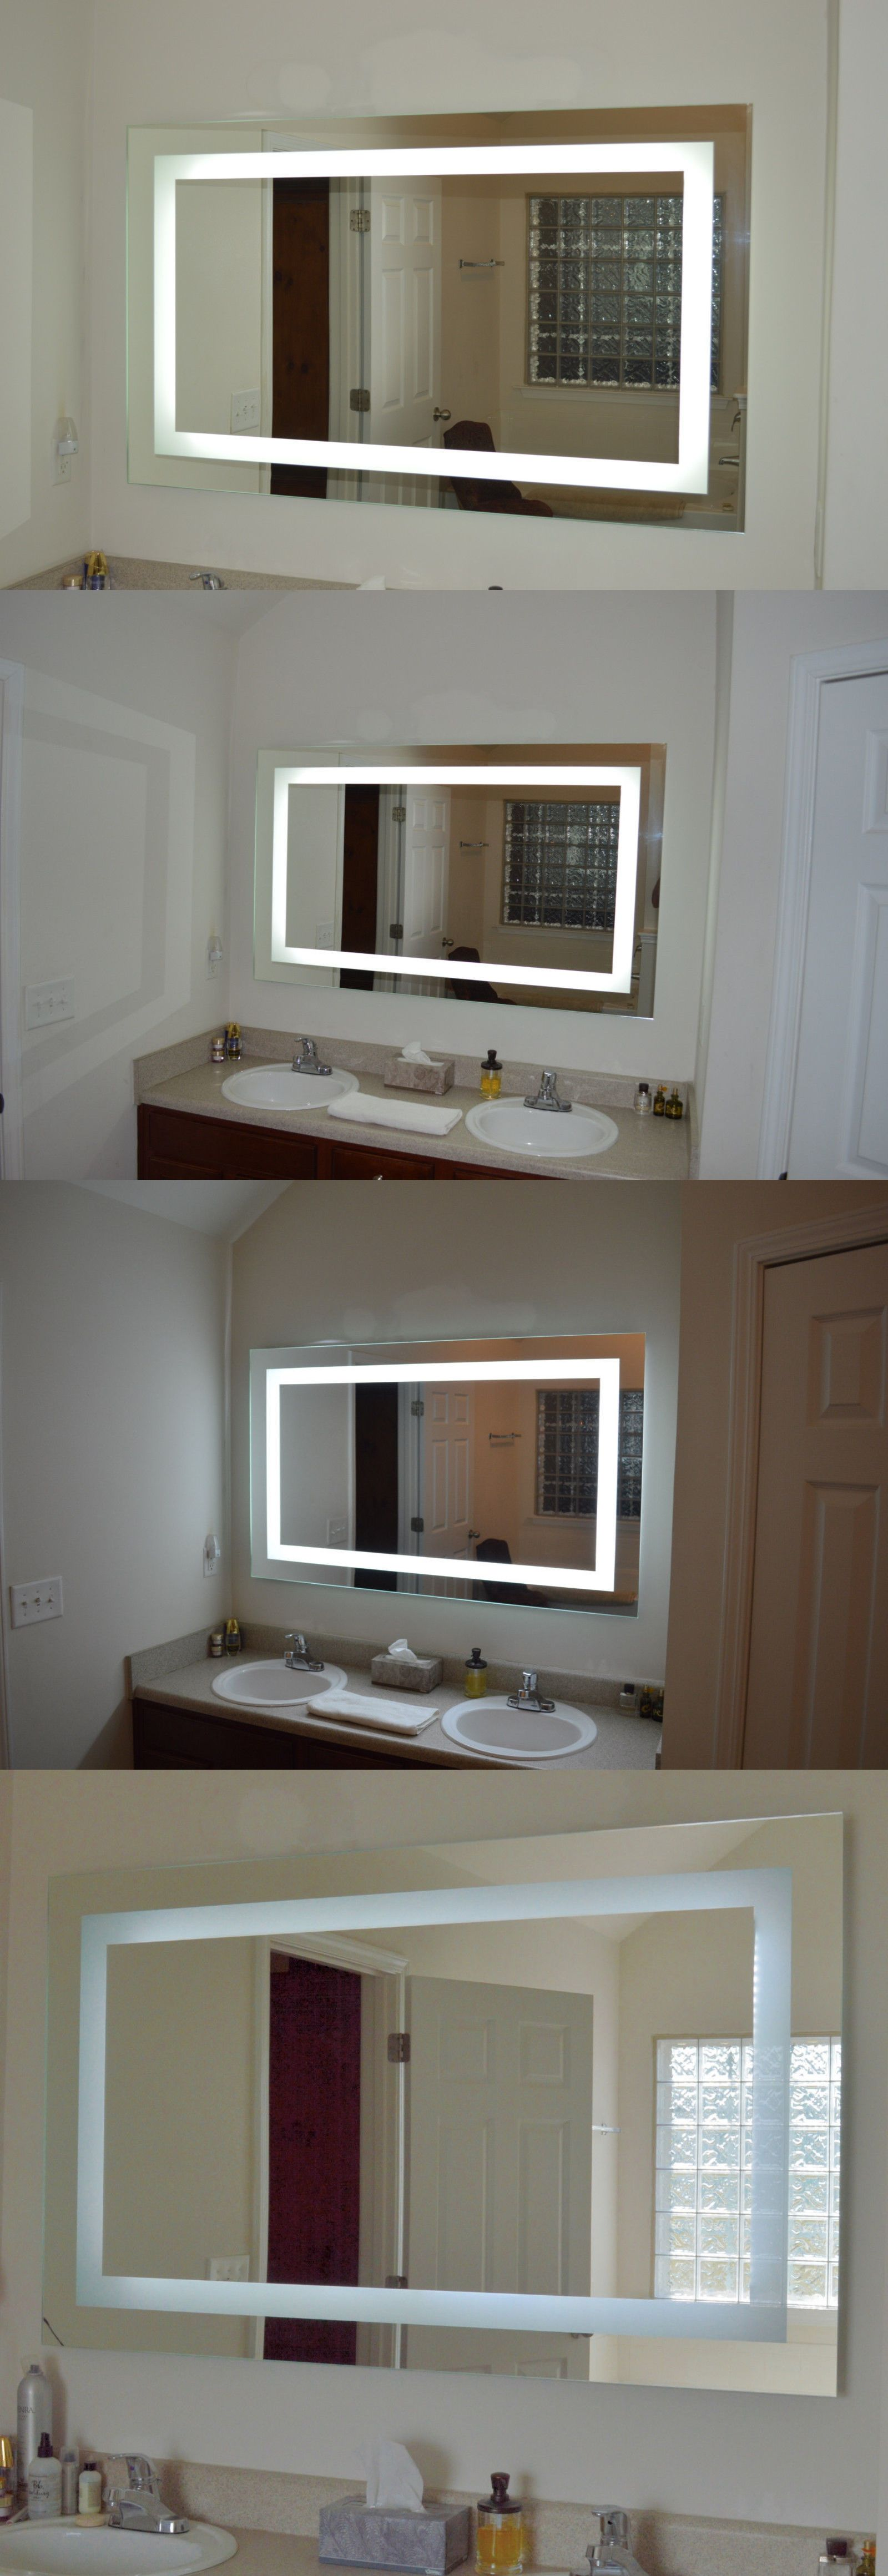 Lighted vanity mirror make up wall mounted led bath mirror mam94331 - Led Makeup Mirror